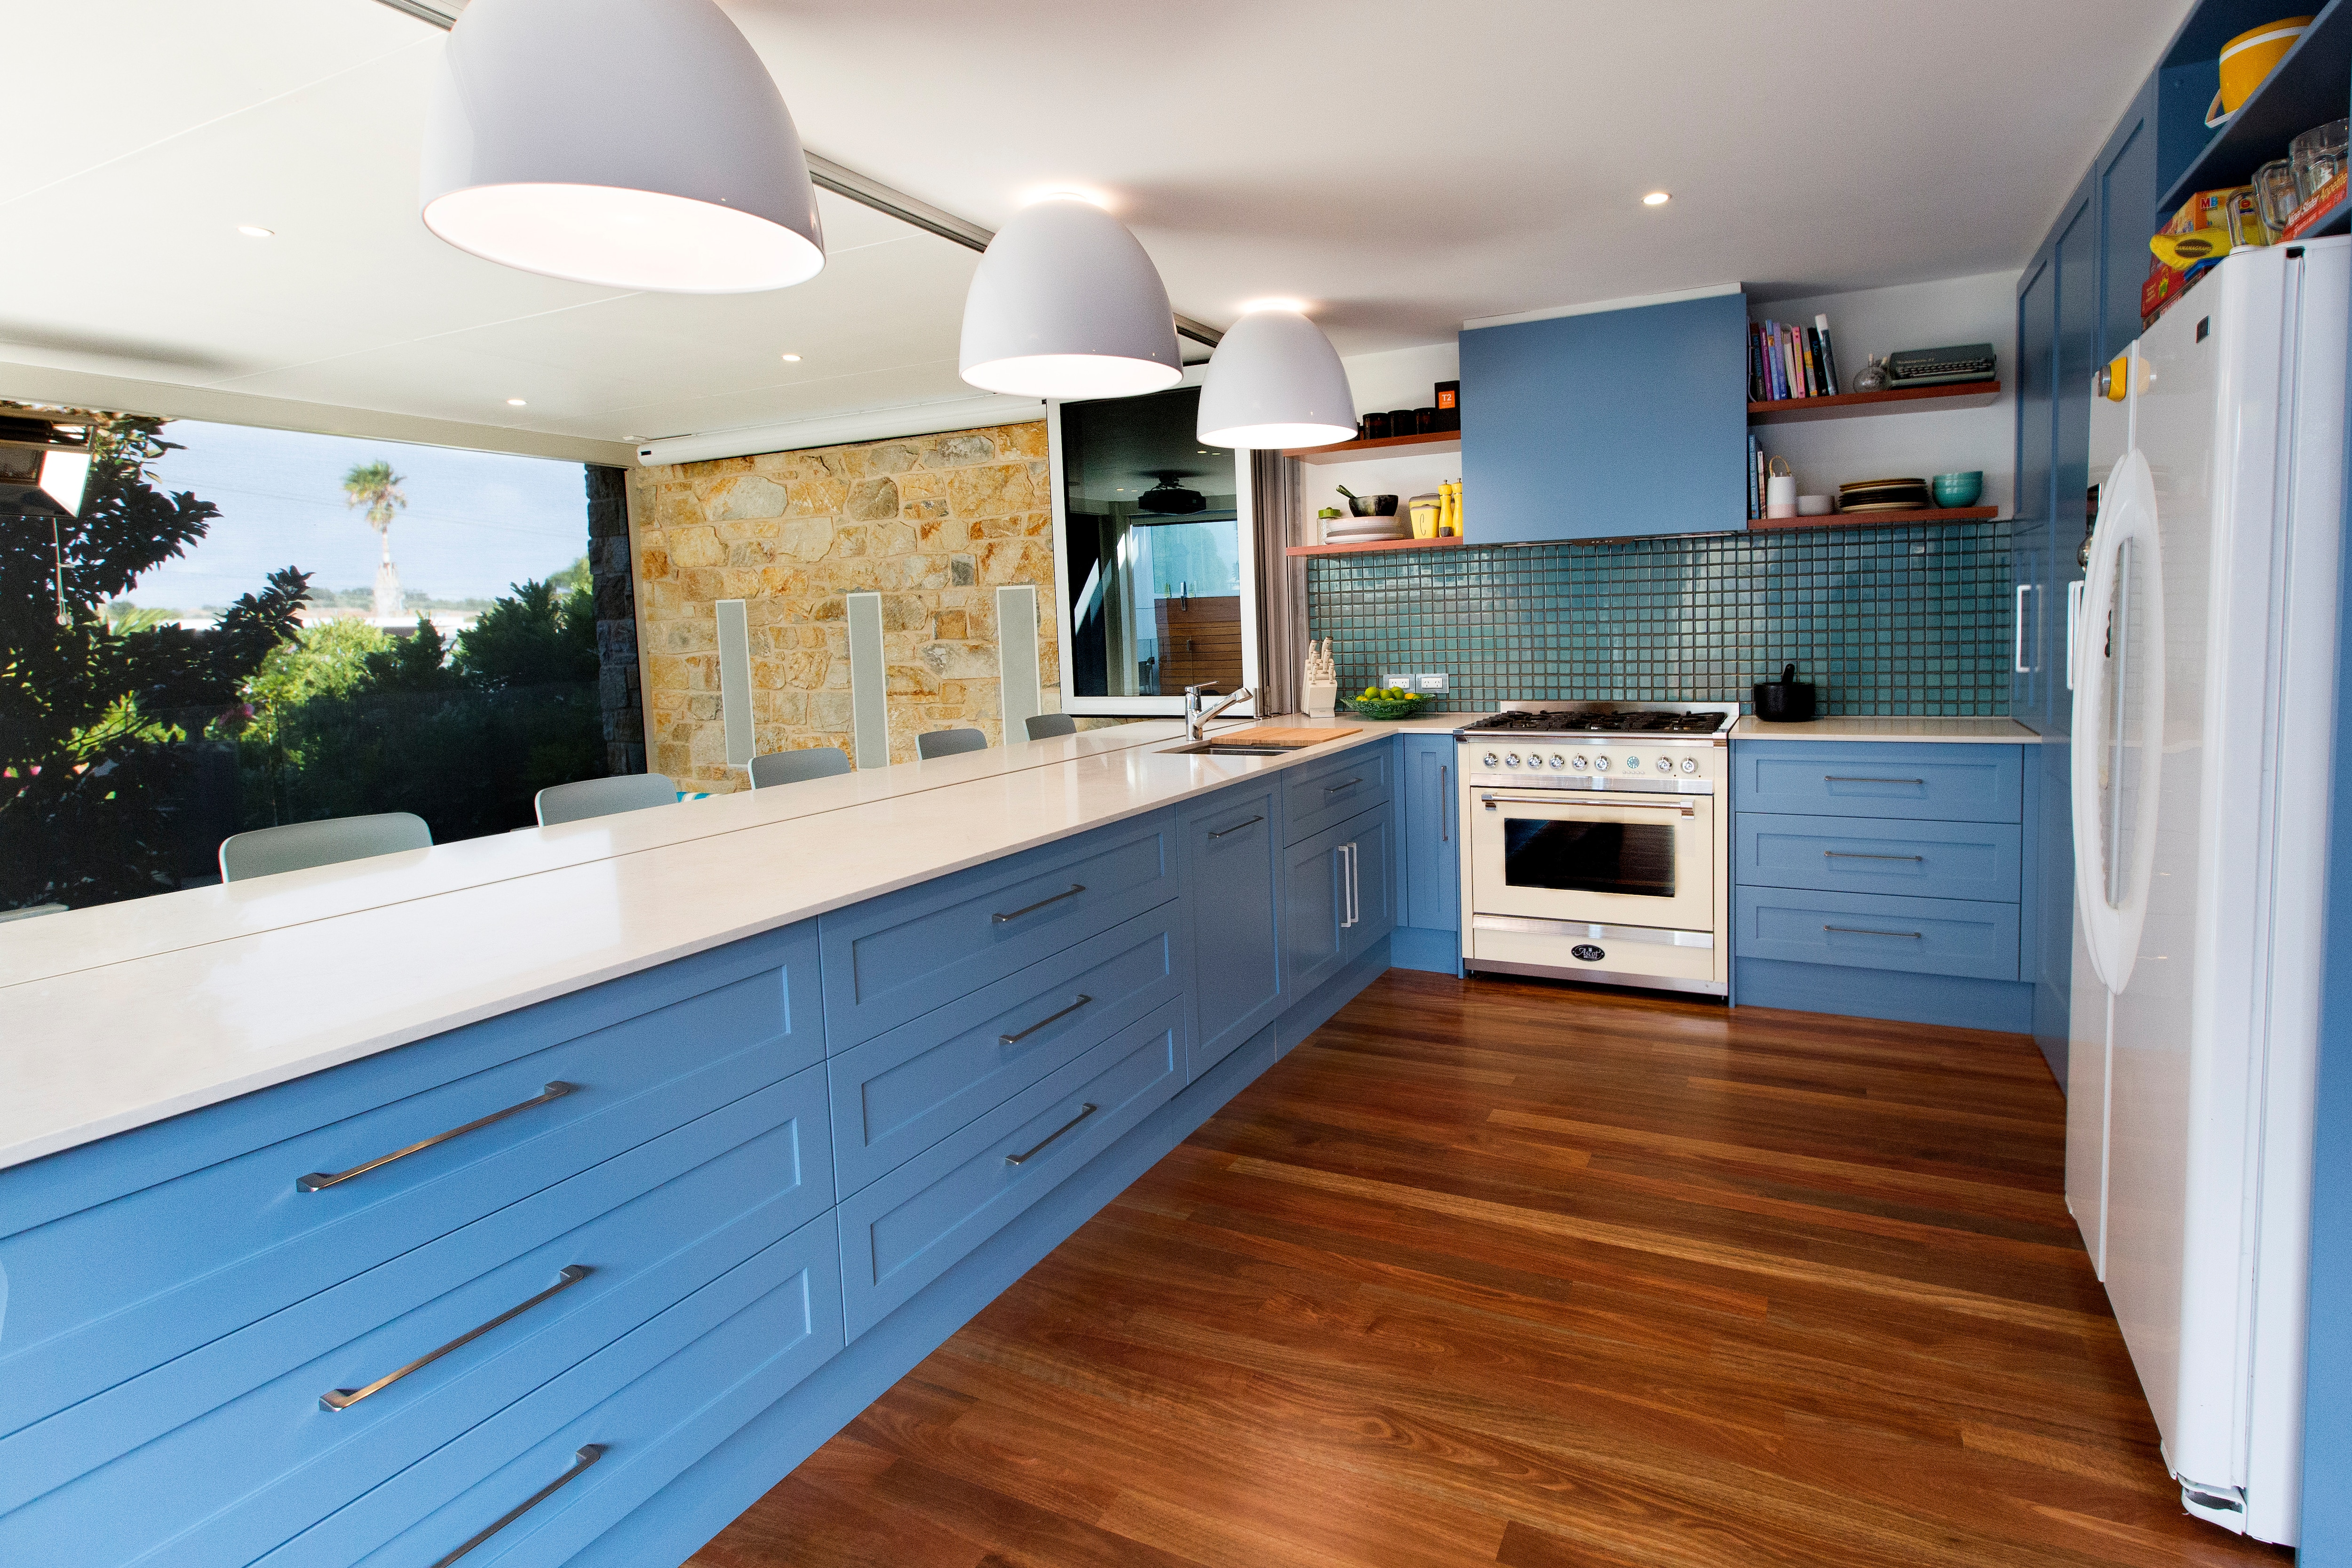 Qbic Living - Kitchen Renovations & Designs - 79 Unley Rd - Parkside